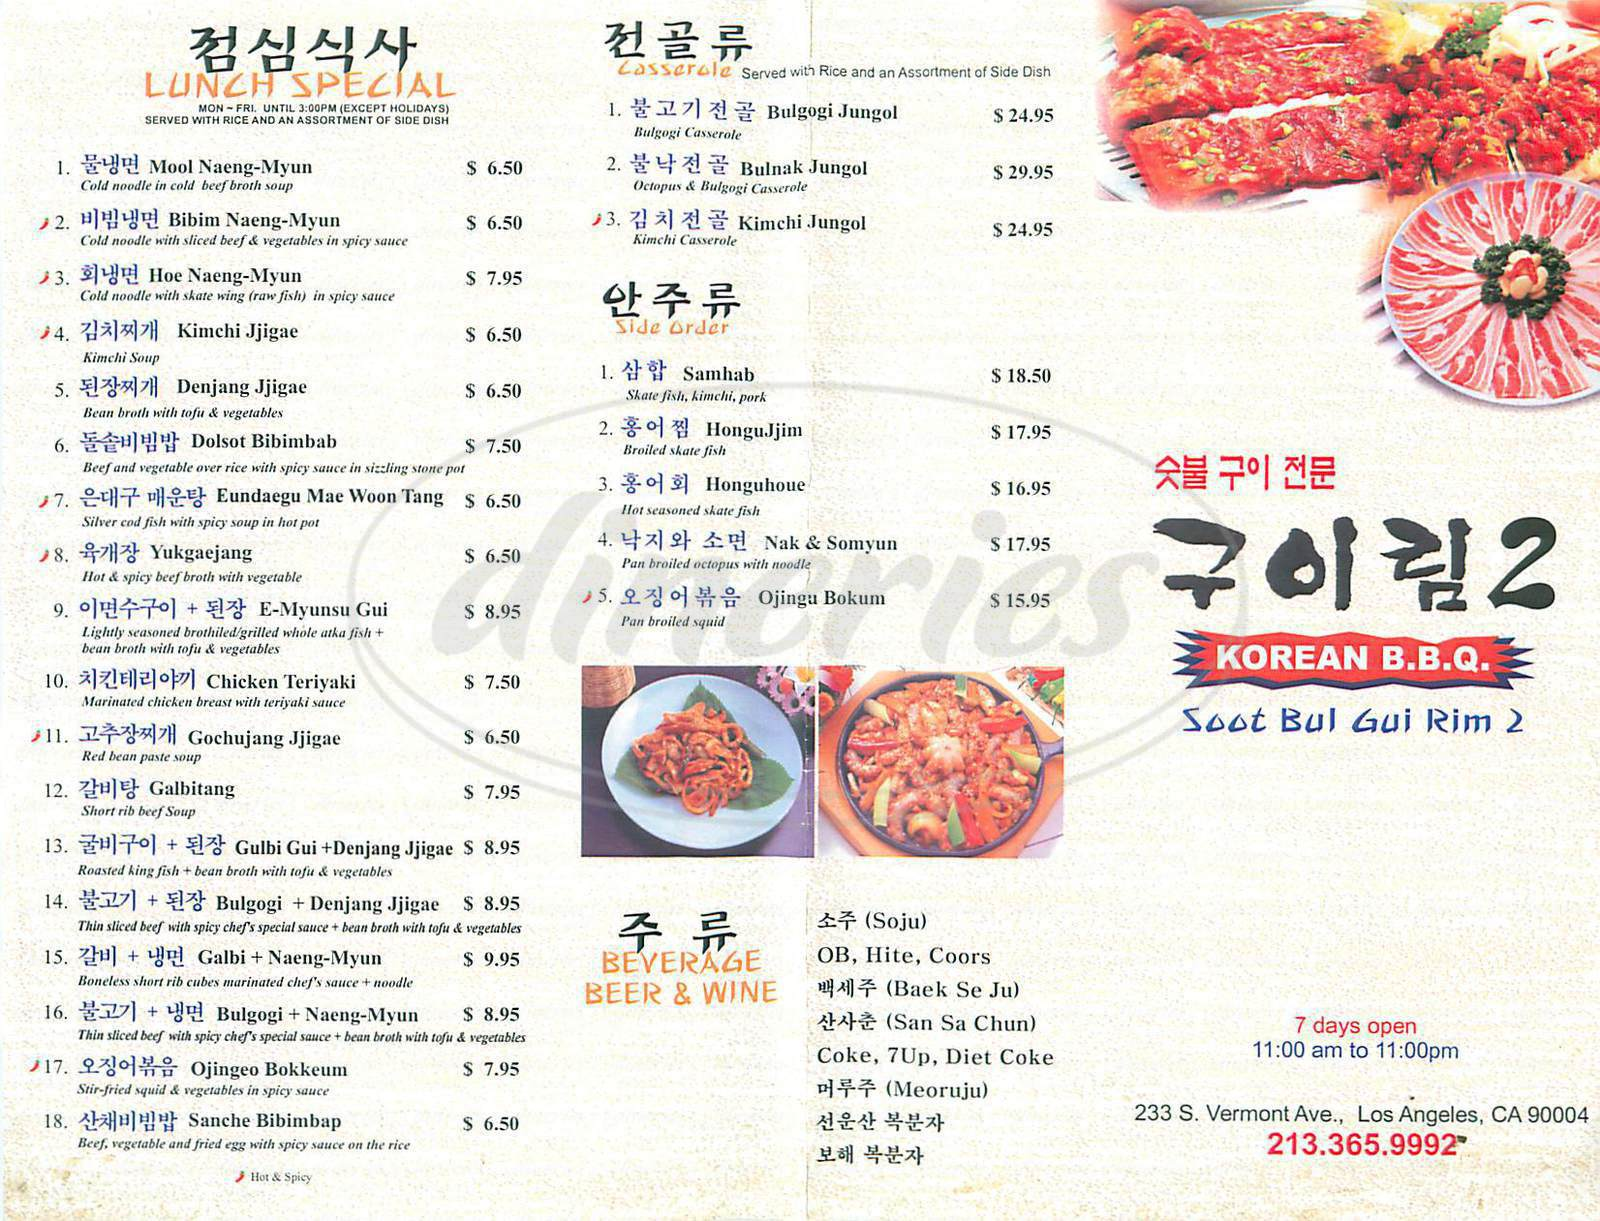 menu for Soot Bul Gui Rim